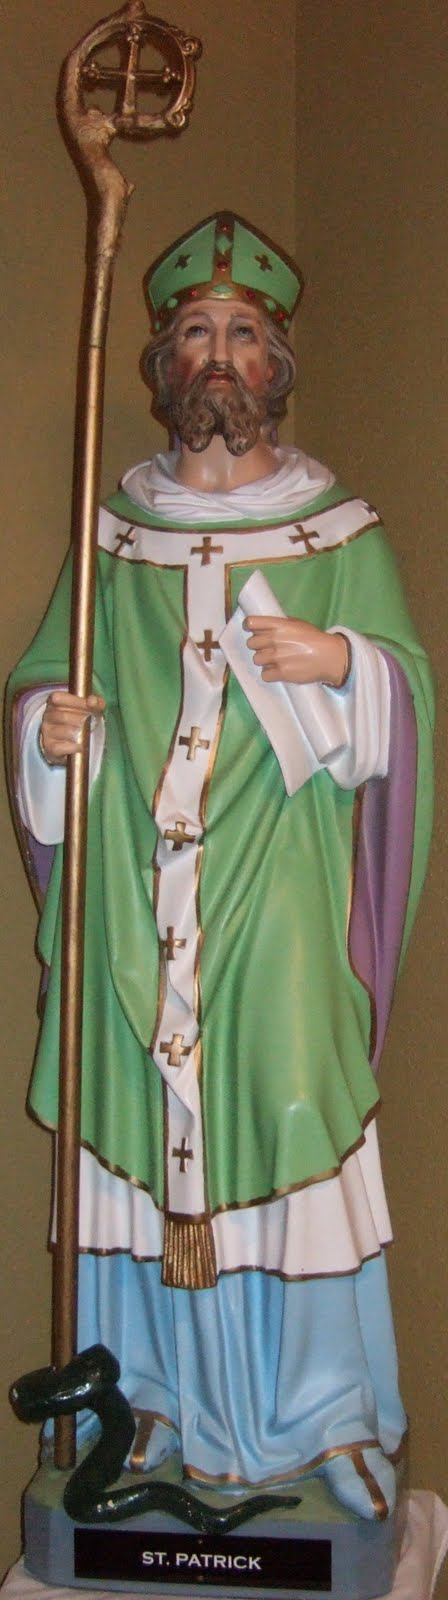 ST PATRICK,OUR PATRON SAINT